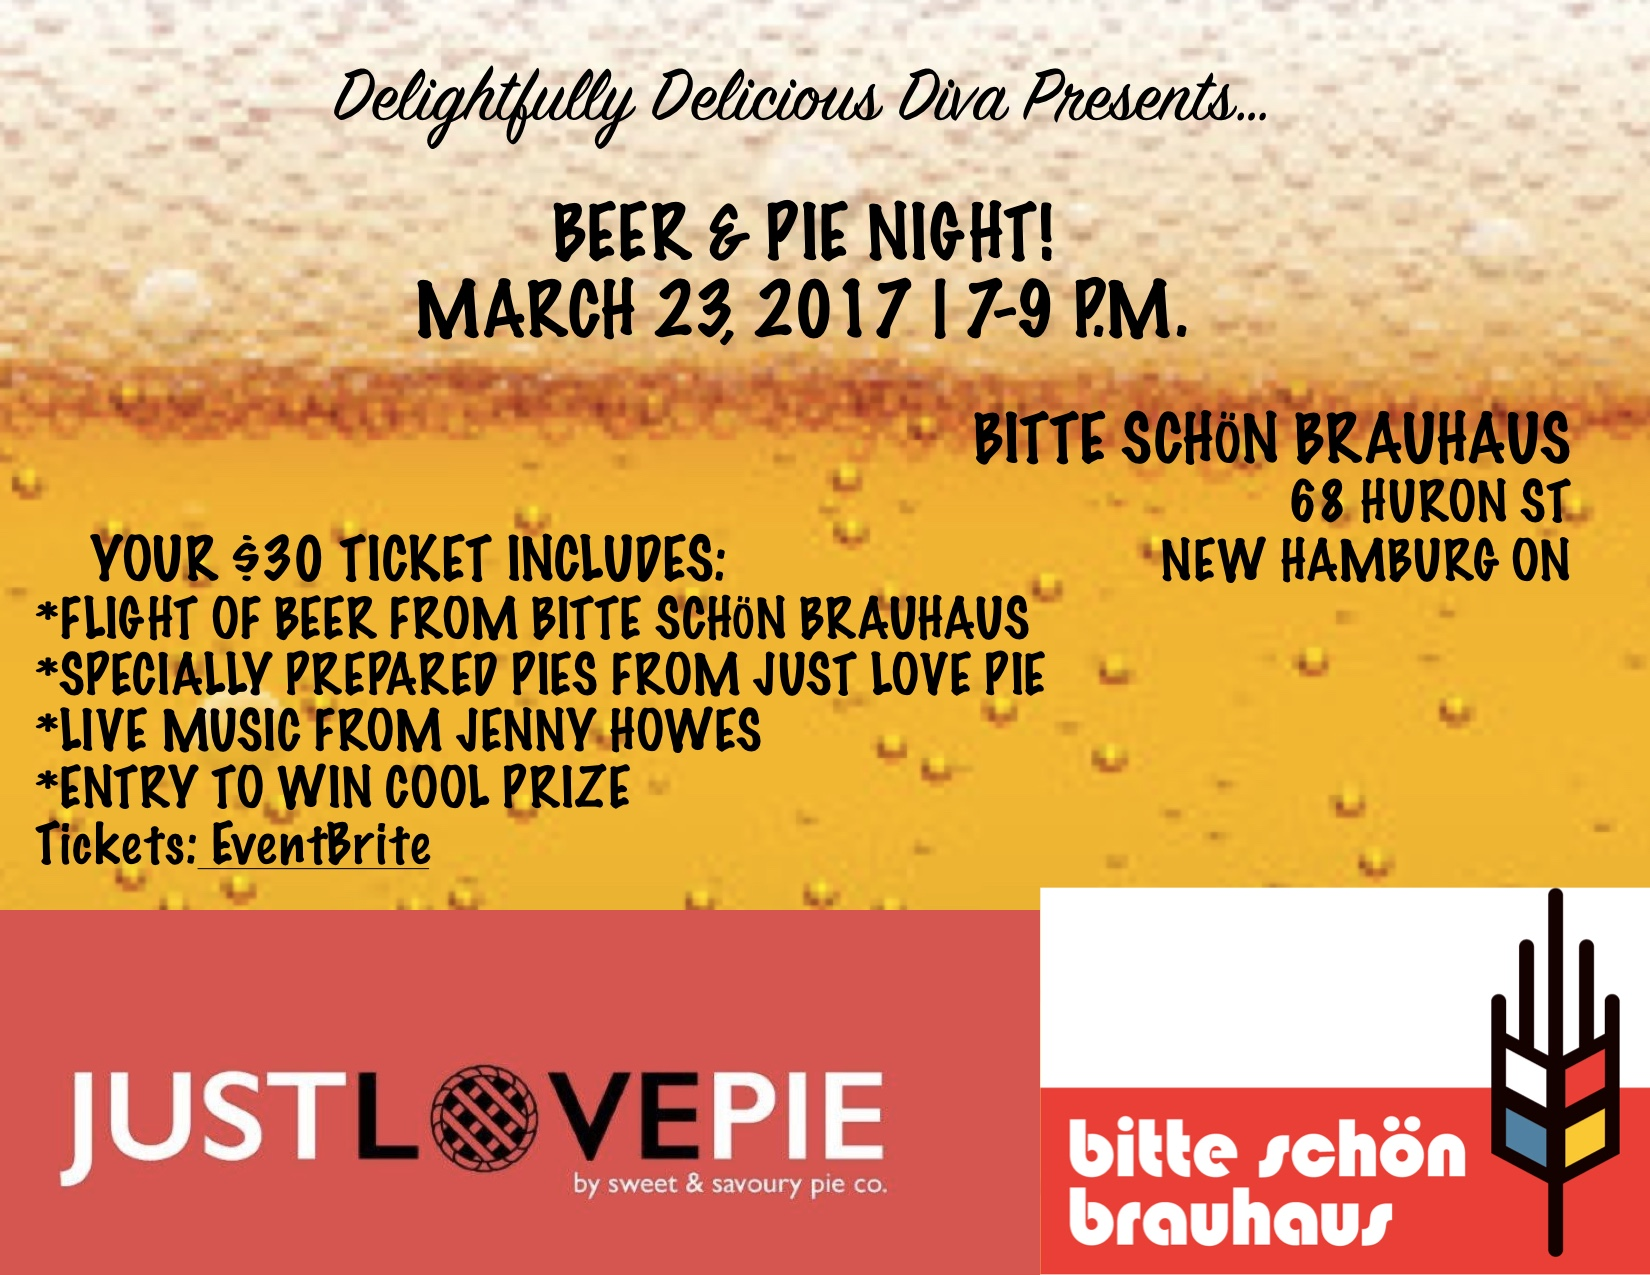 Beer and pie info